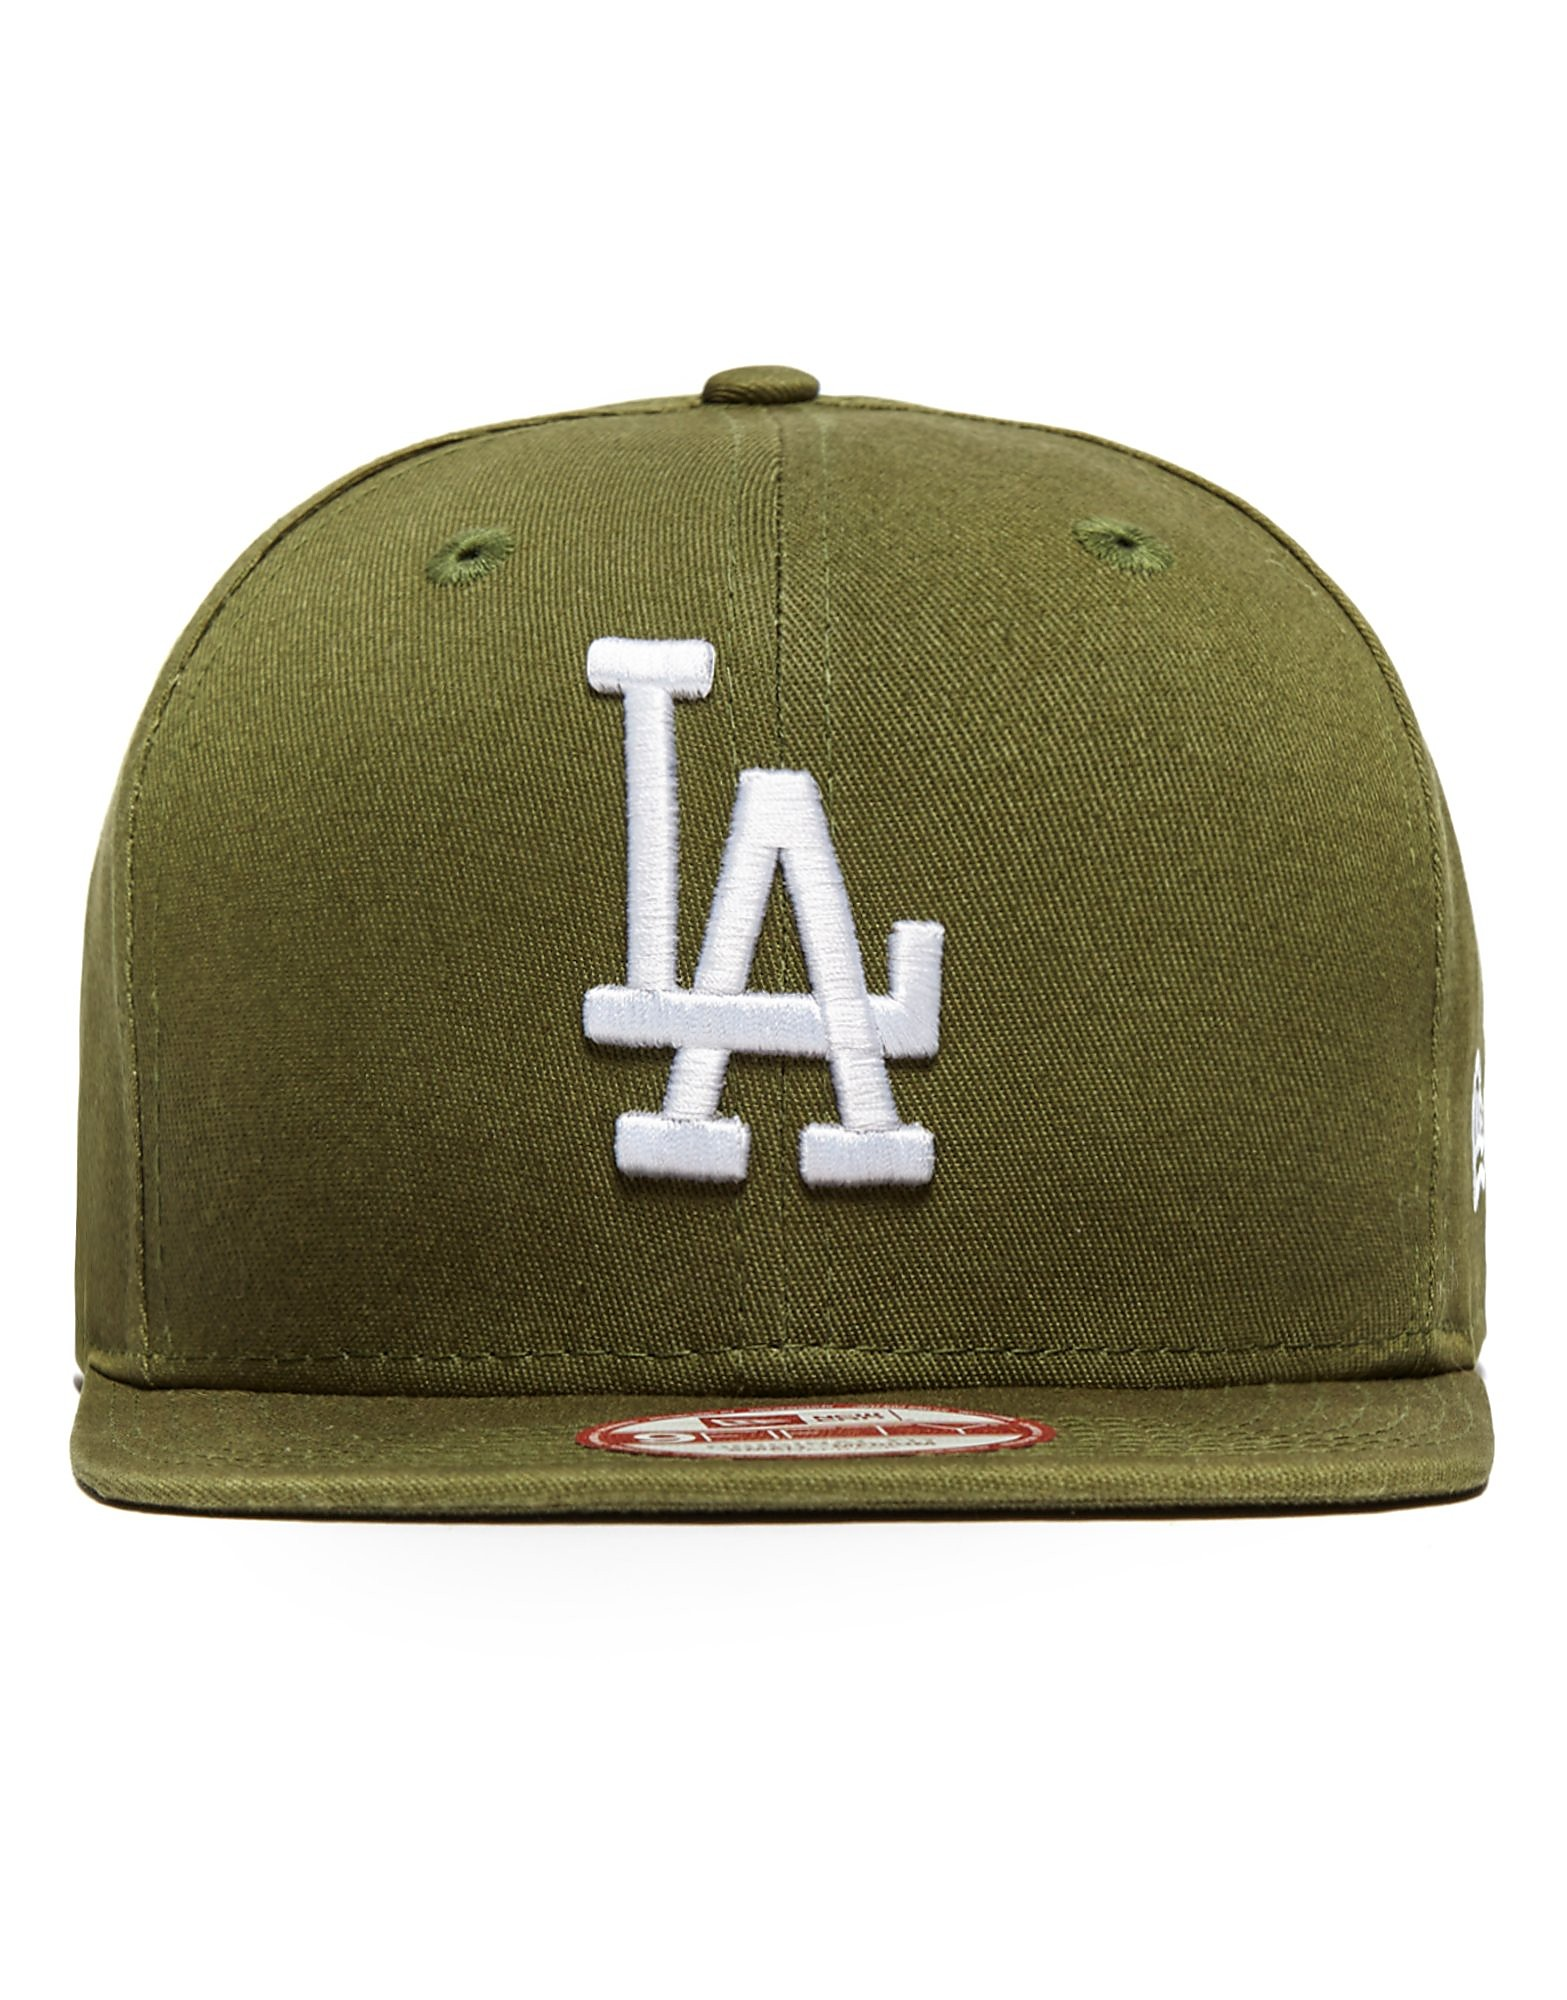 New Era 9FIFTY MLB Los Angeles Dodgers Snapback Cap